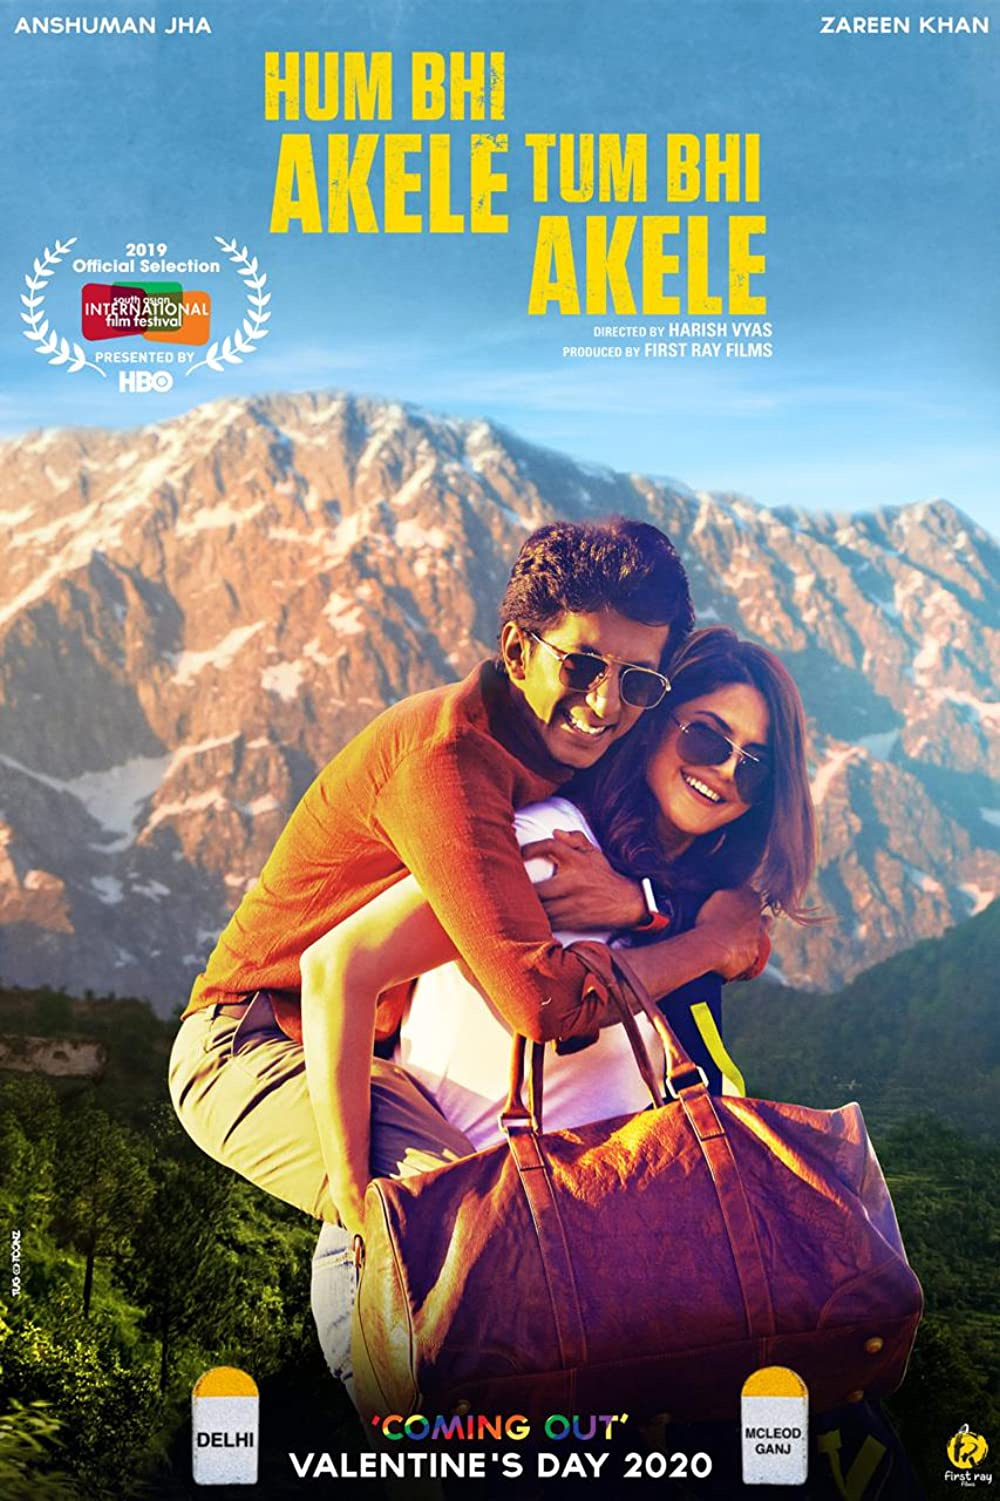 Hum Bhi Akele Tum Bhi Akele 2021 Hindi Movie 480p HDRip ESub 400MB x264 AAC